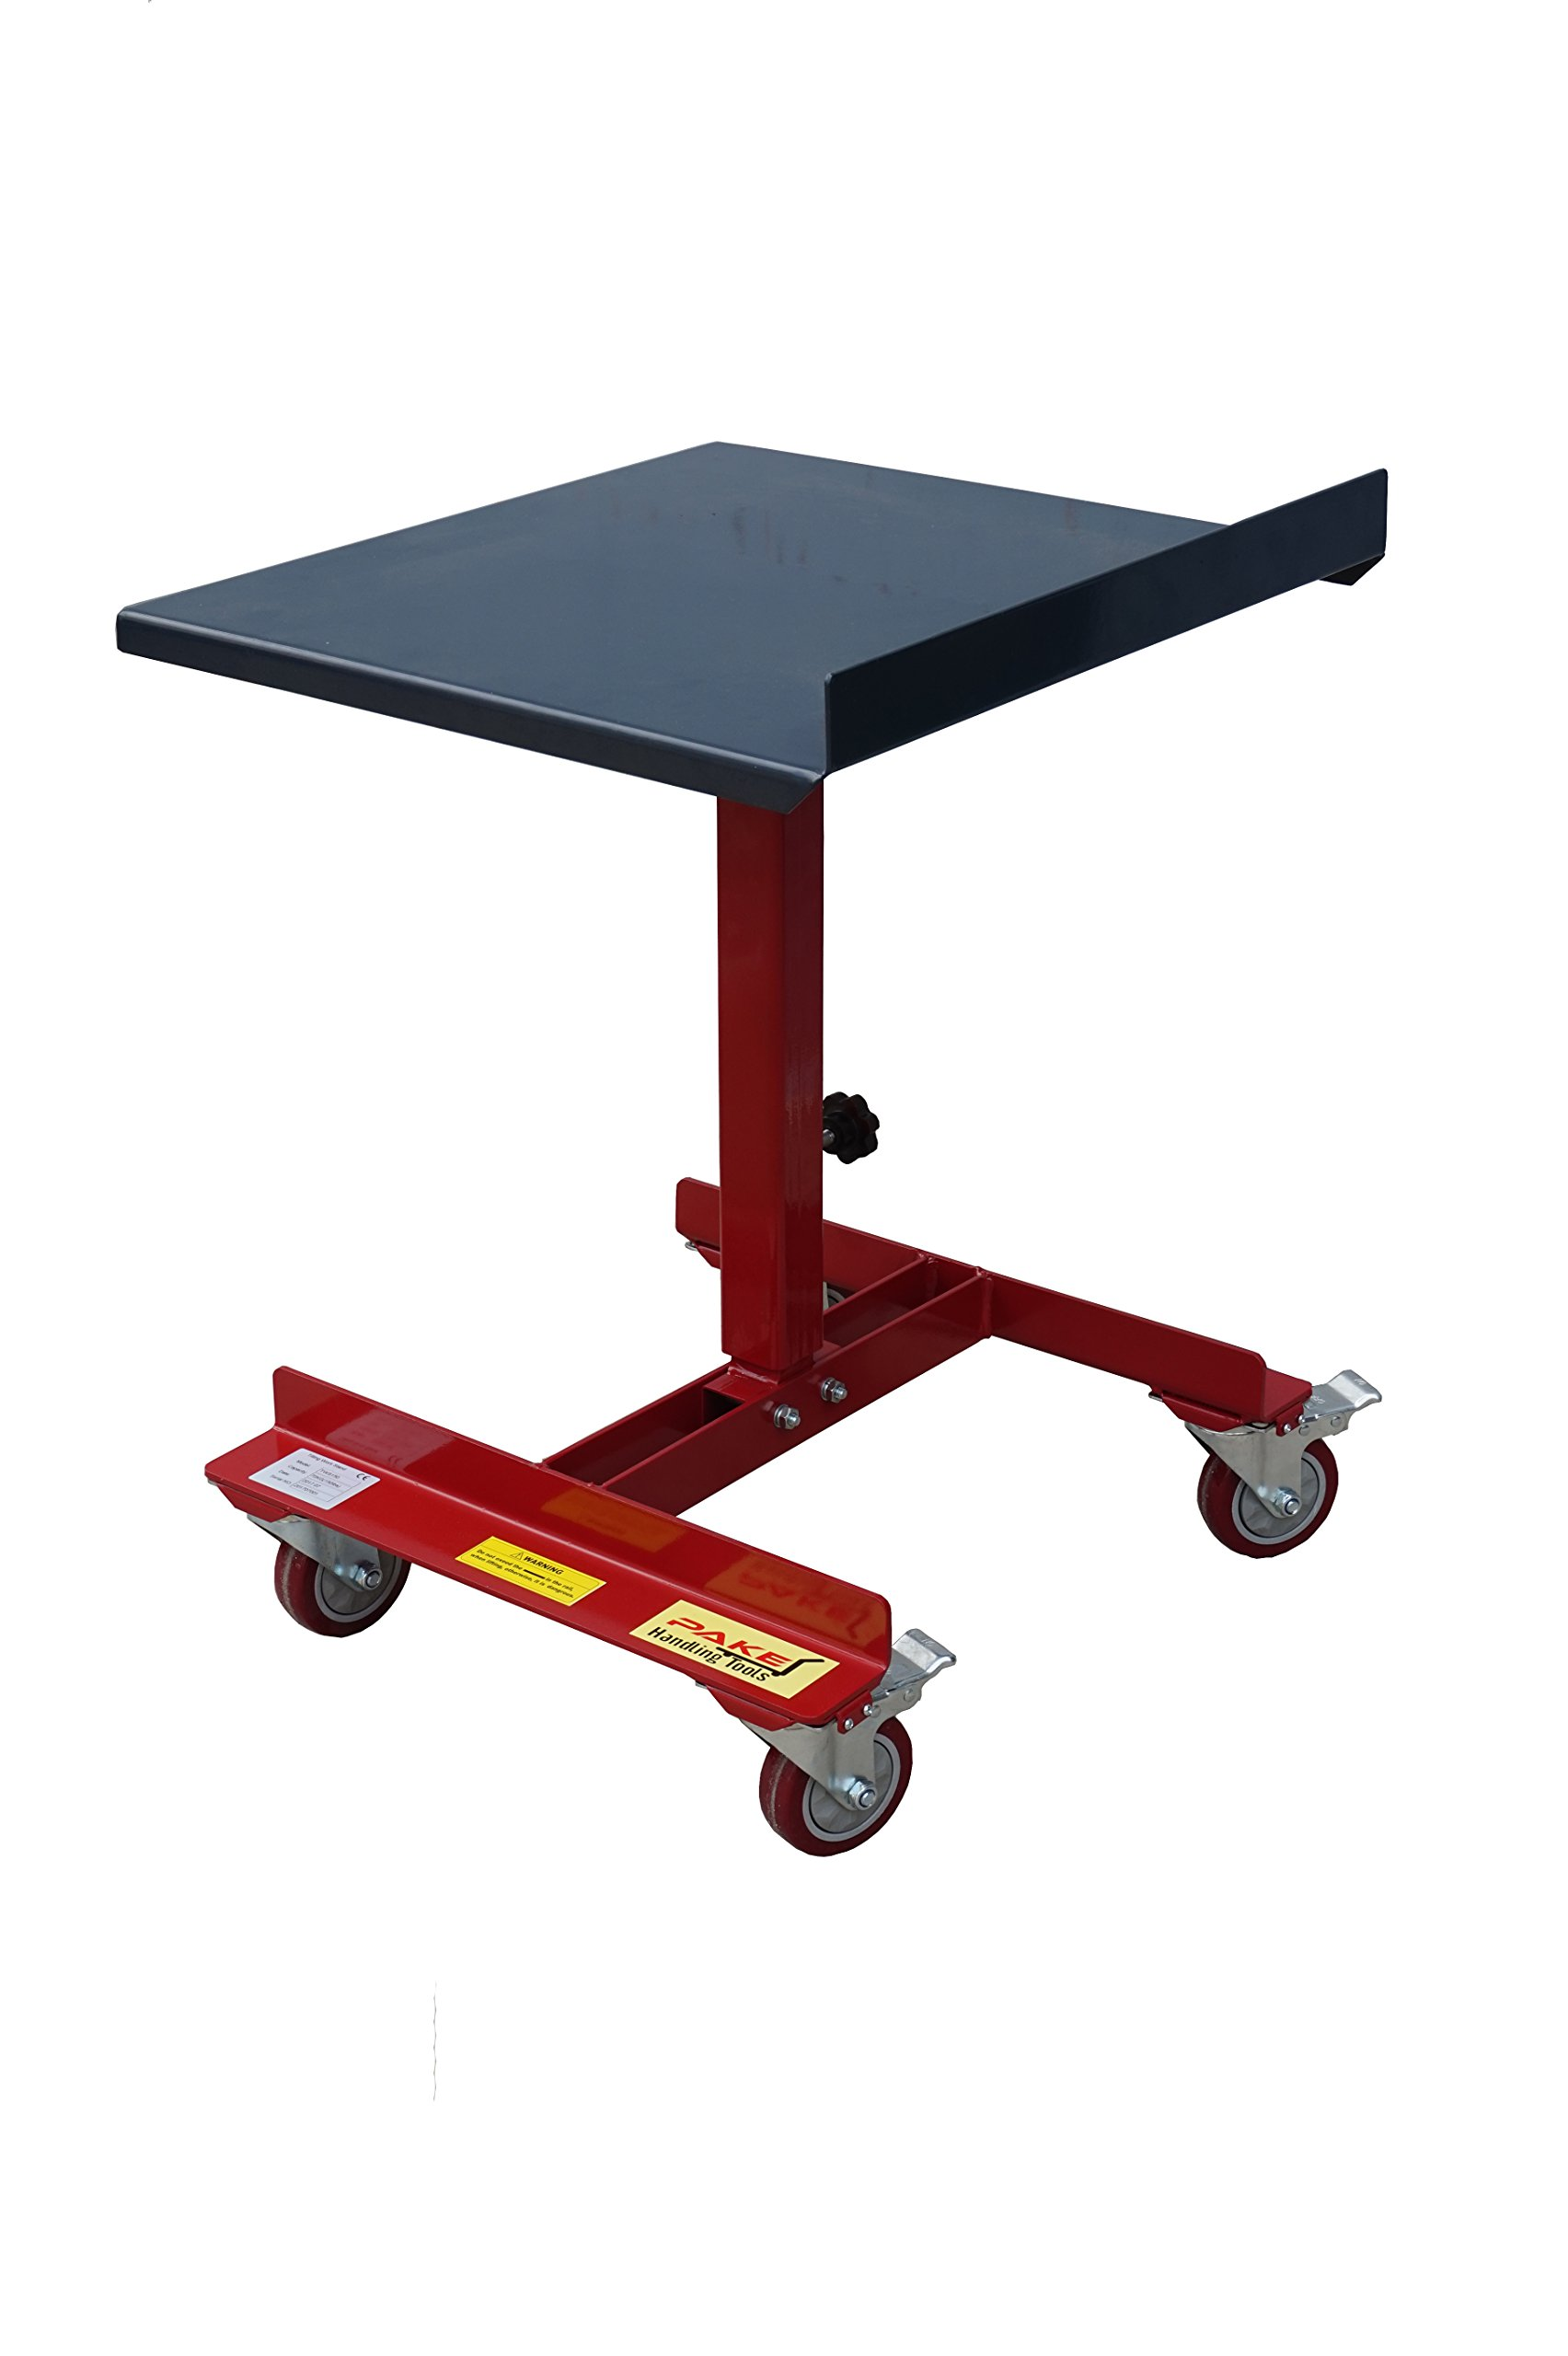 Pake Handling Tools - Tilting Work Table, 150 lbs Capacity, 22x21'', 28 to 38'' Height, 45 Degree Tilting